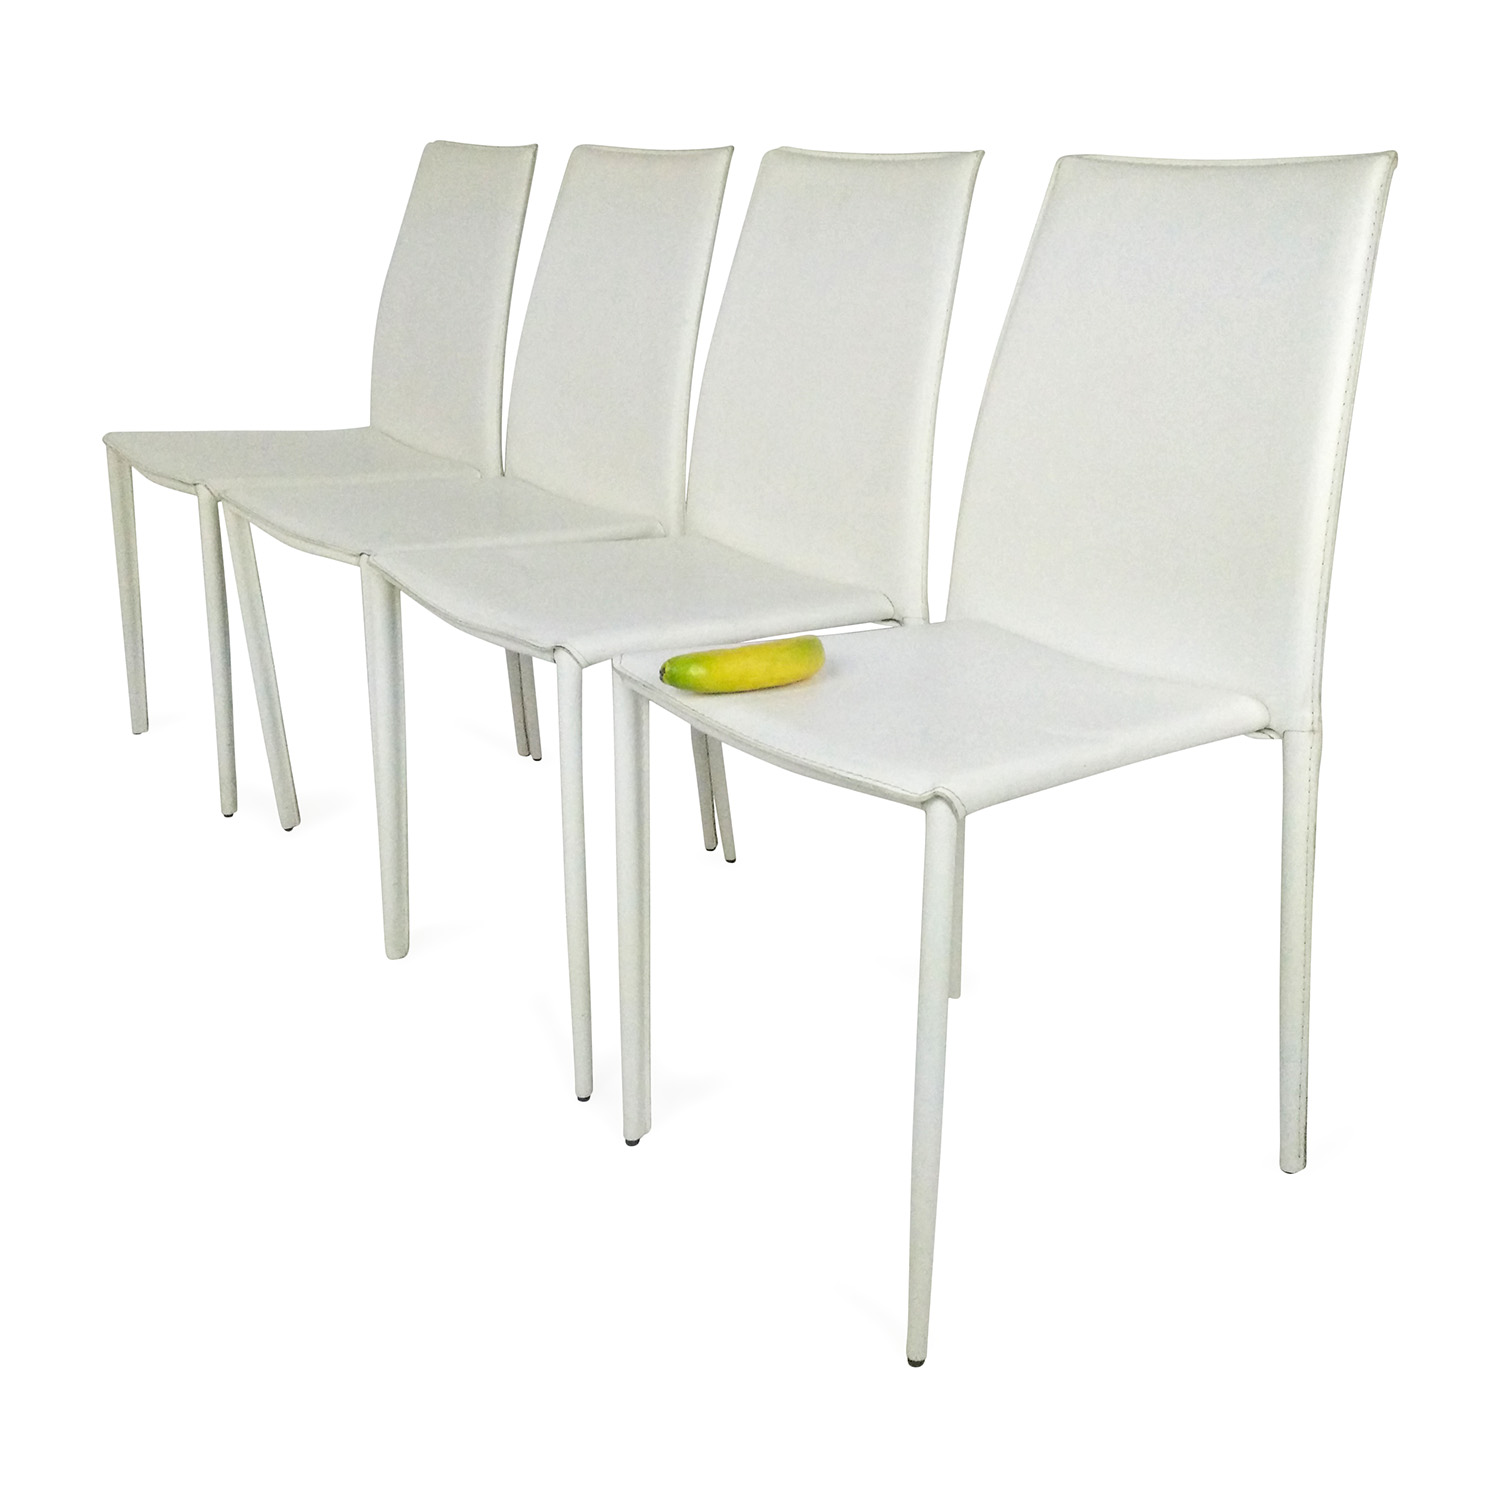 Pleasant 63 Off Allmodern All Modern 4 Dining Chairs Chairs Dailytribune Chair Design For Home Dailytribuneorg